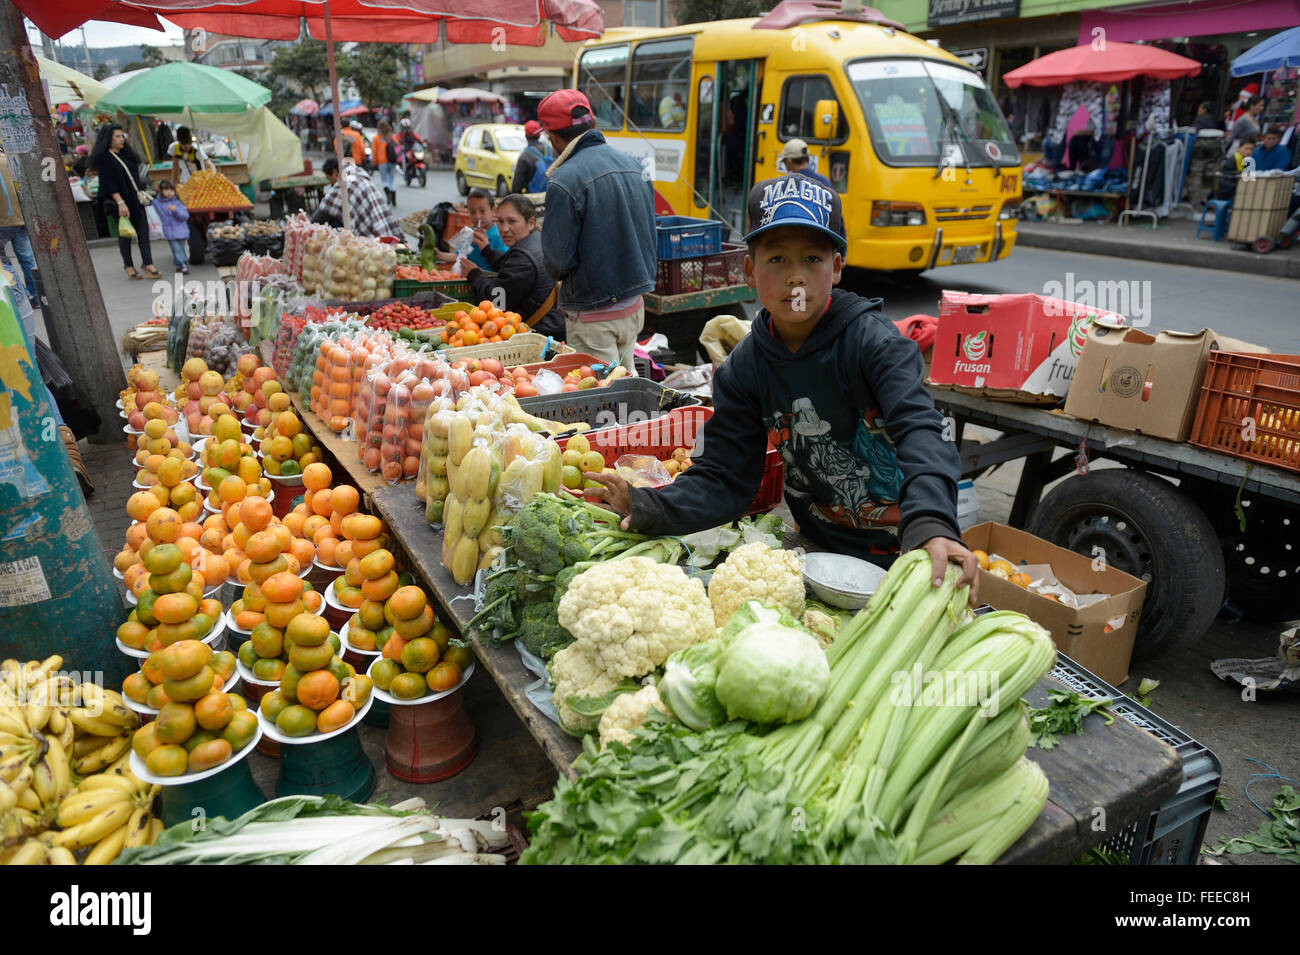 Child labor, boy, 12 years, selling vegetables at a street market, Barrio 20 de Julio, Bogota, Colombia - Stock Image